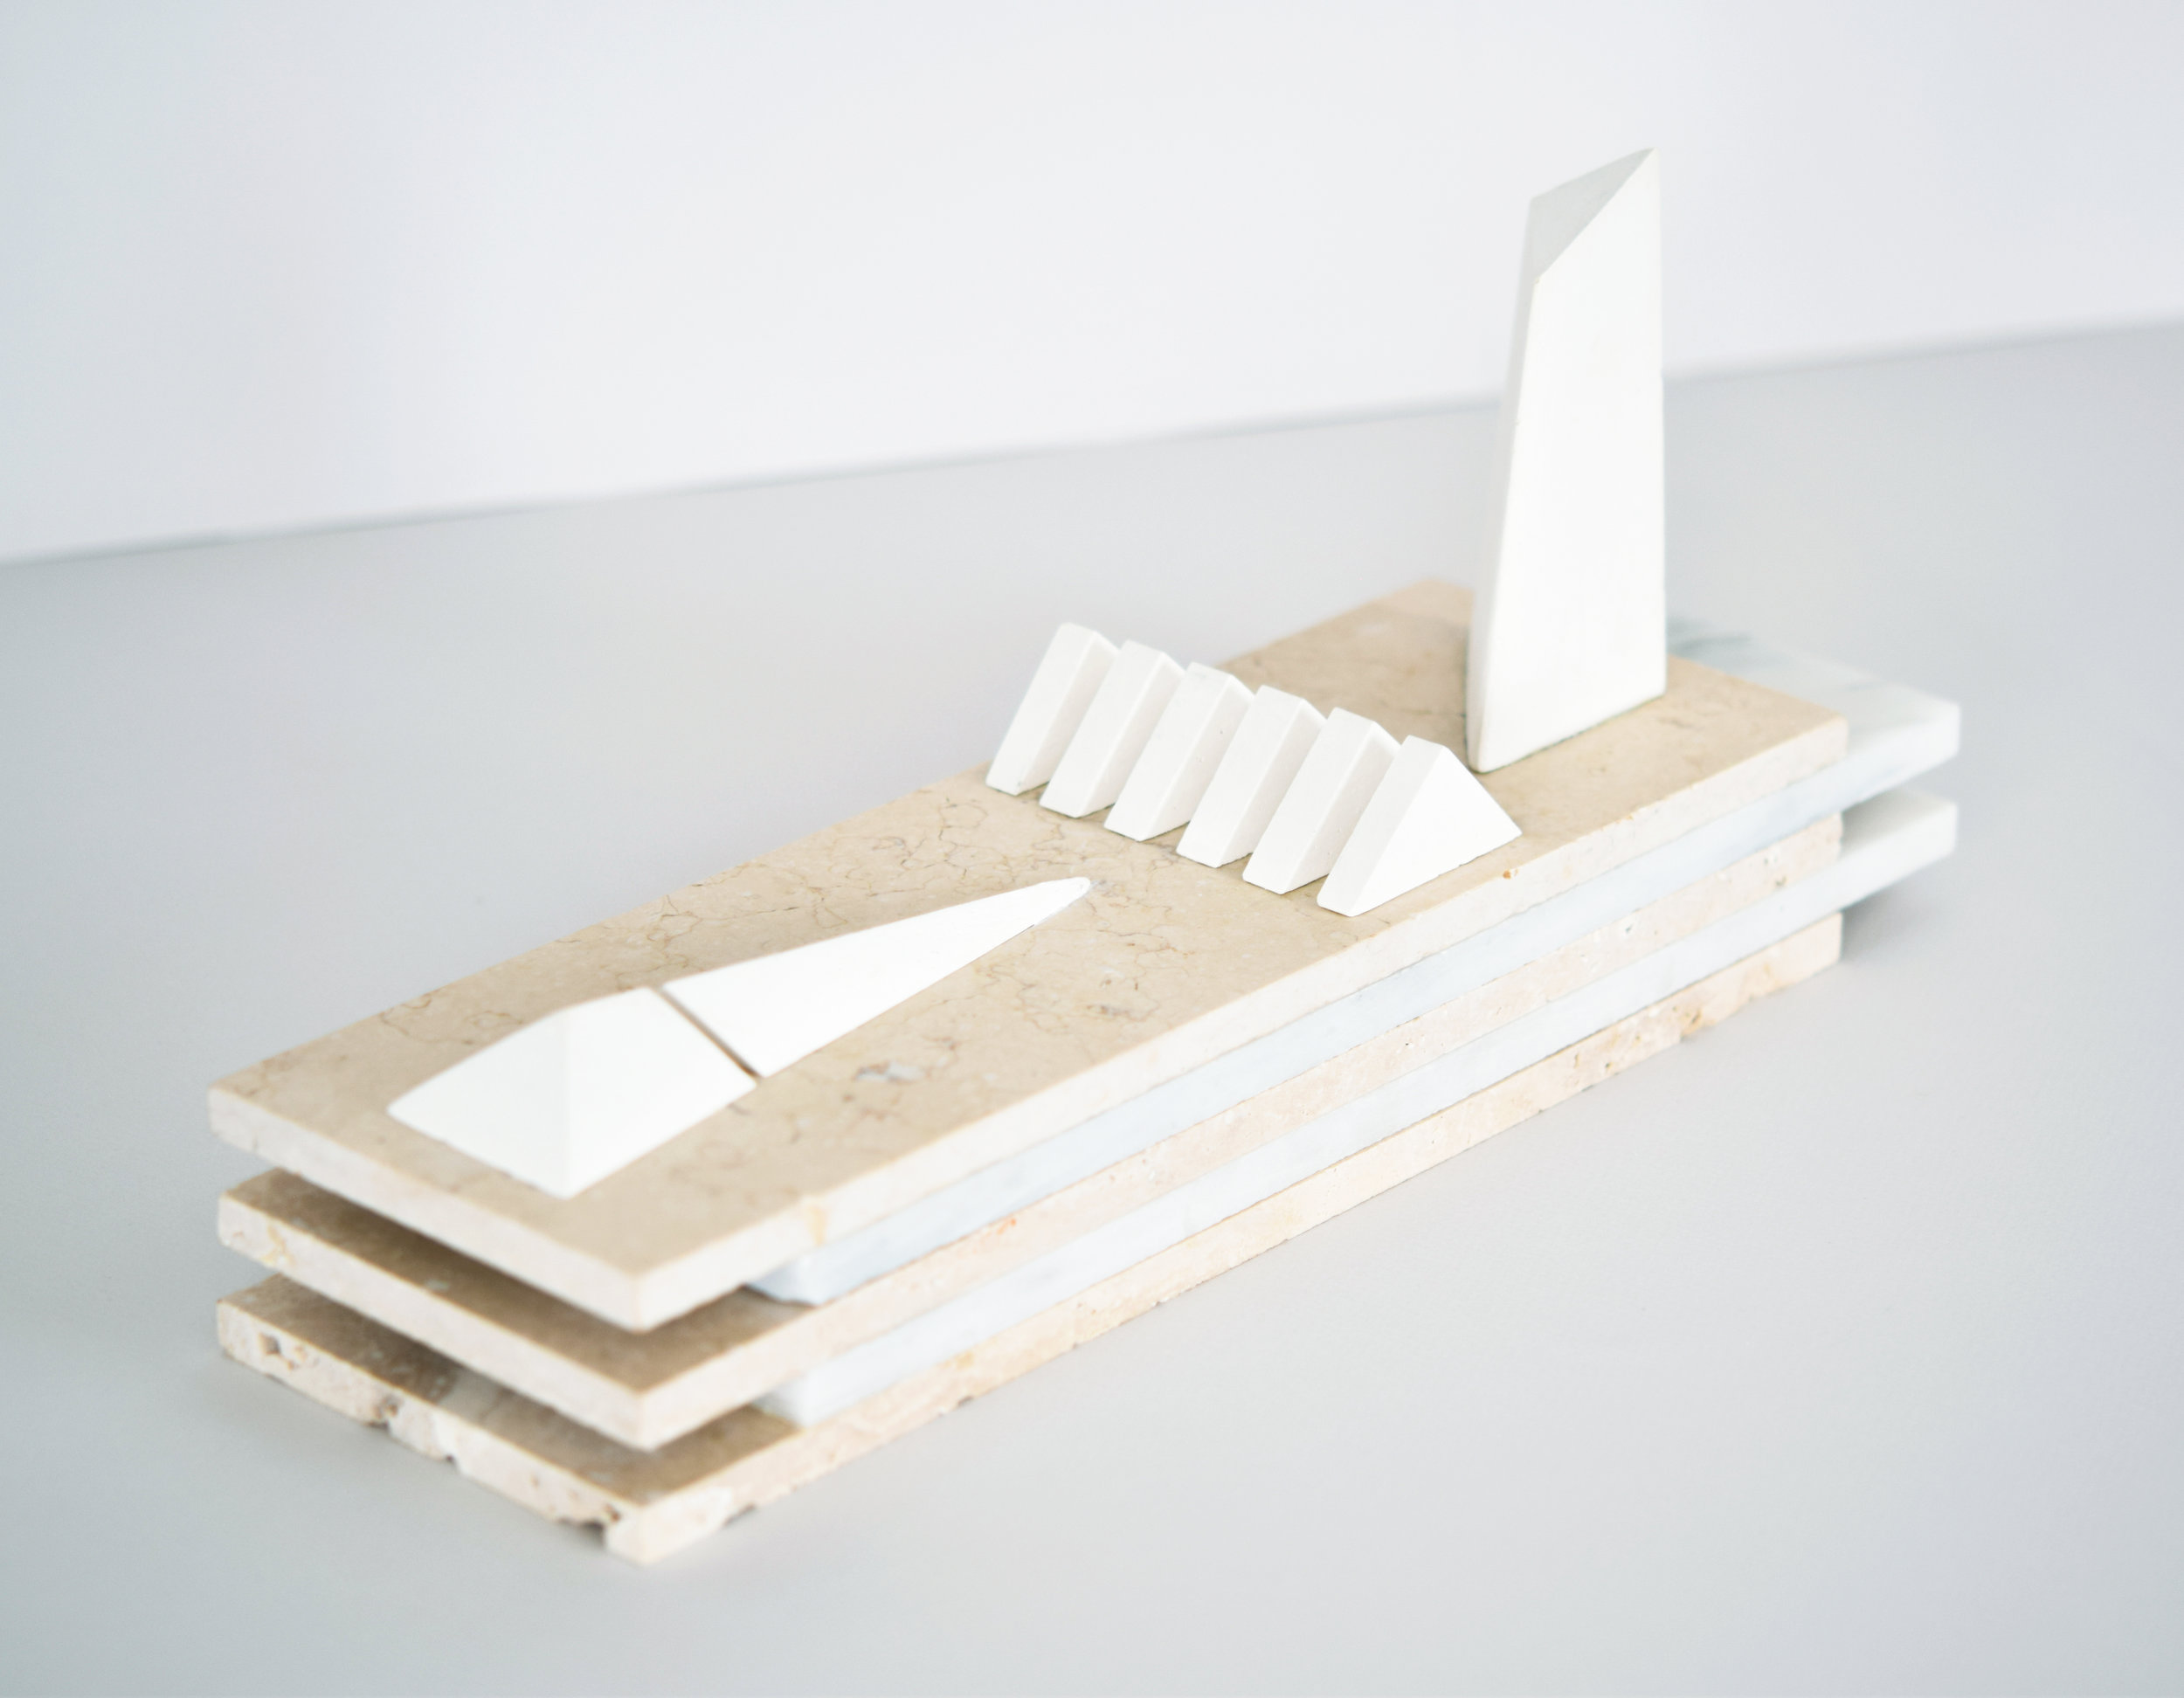 permission structures  2017 travertine, marble, cast plaster 15.5 in x 4 in x 6.5 in